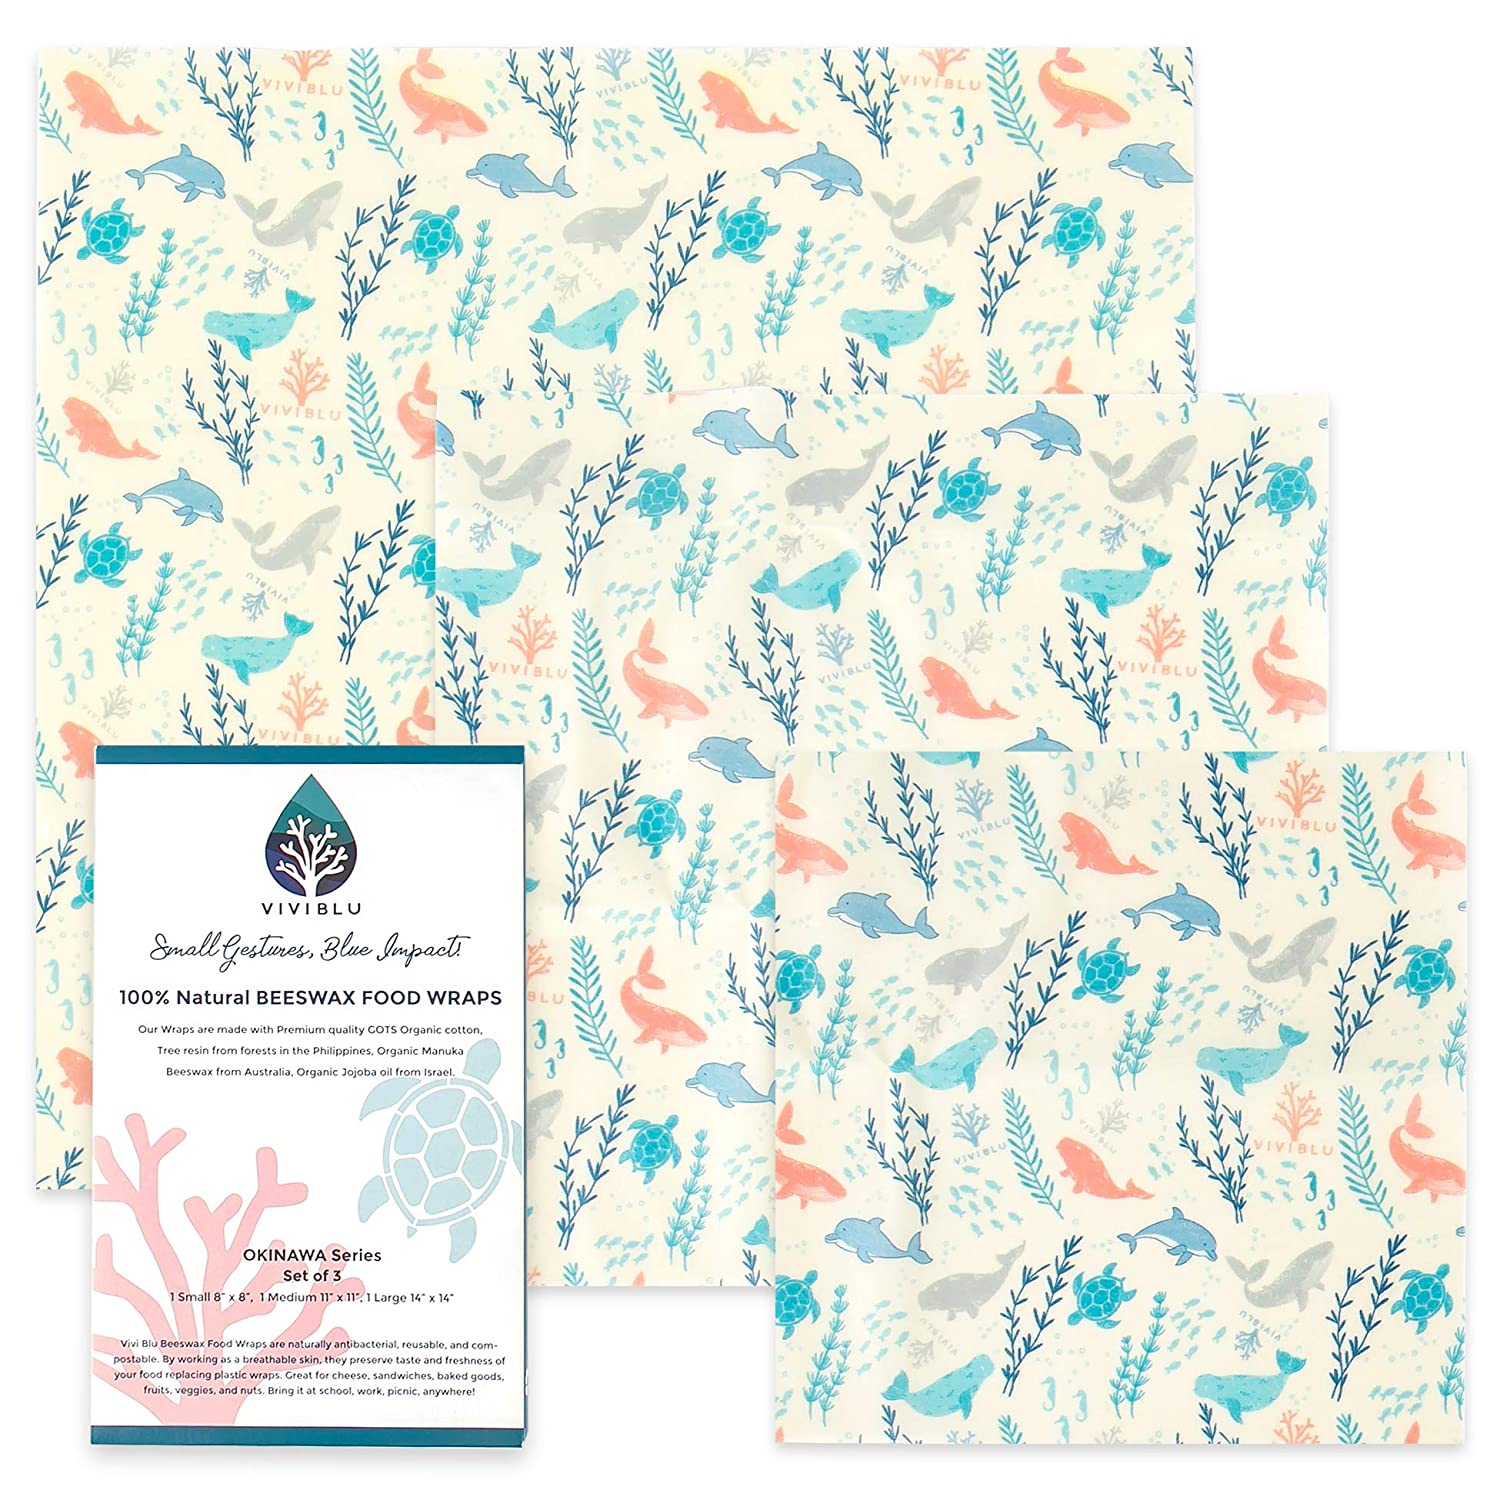 VIVIBLU Organic Reusable Beeswax Food Wrap - Okinawa Series Eco friendly &  Sustainable Premium Bees Wax Wraps - Plastic Free & Zero Waste Kitchen